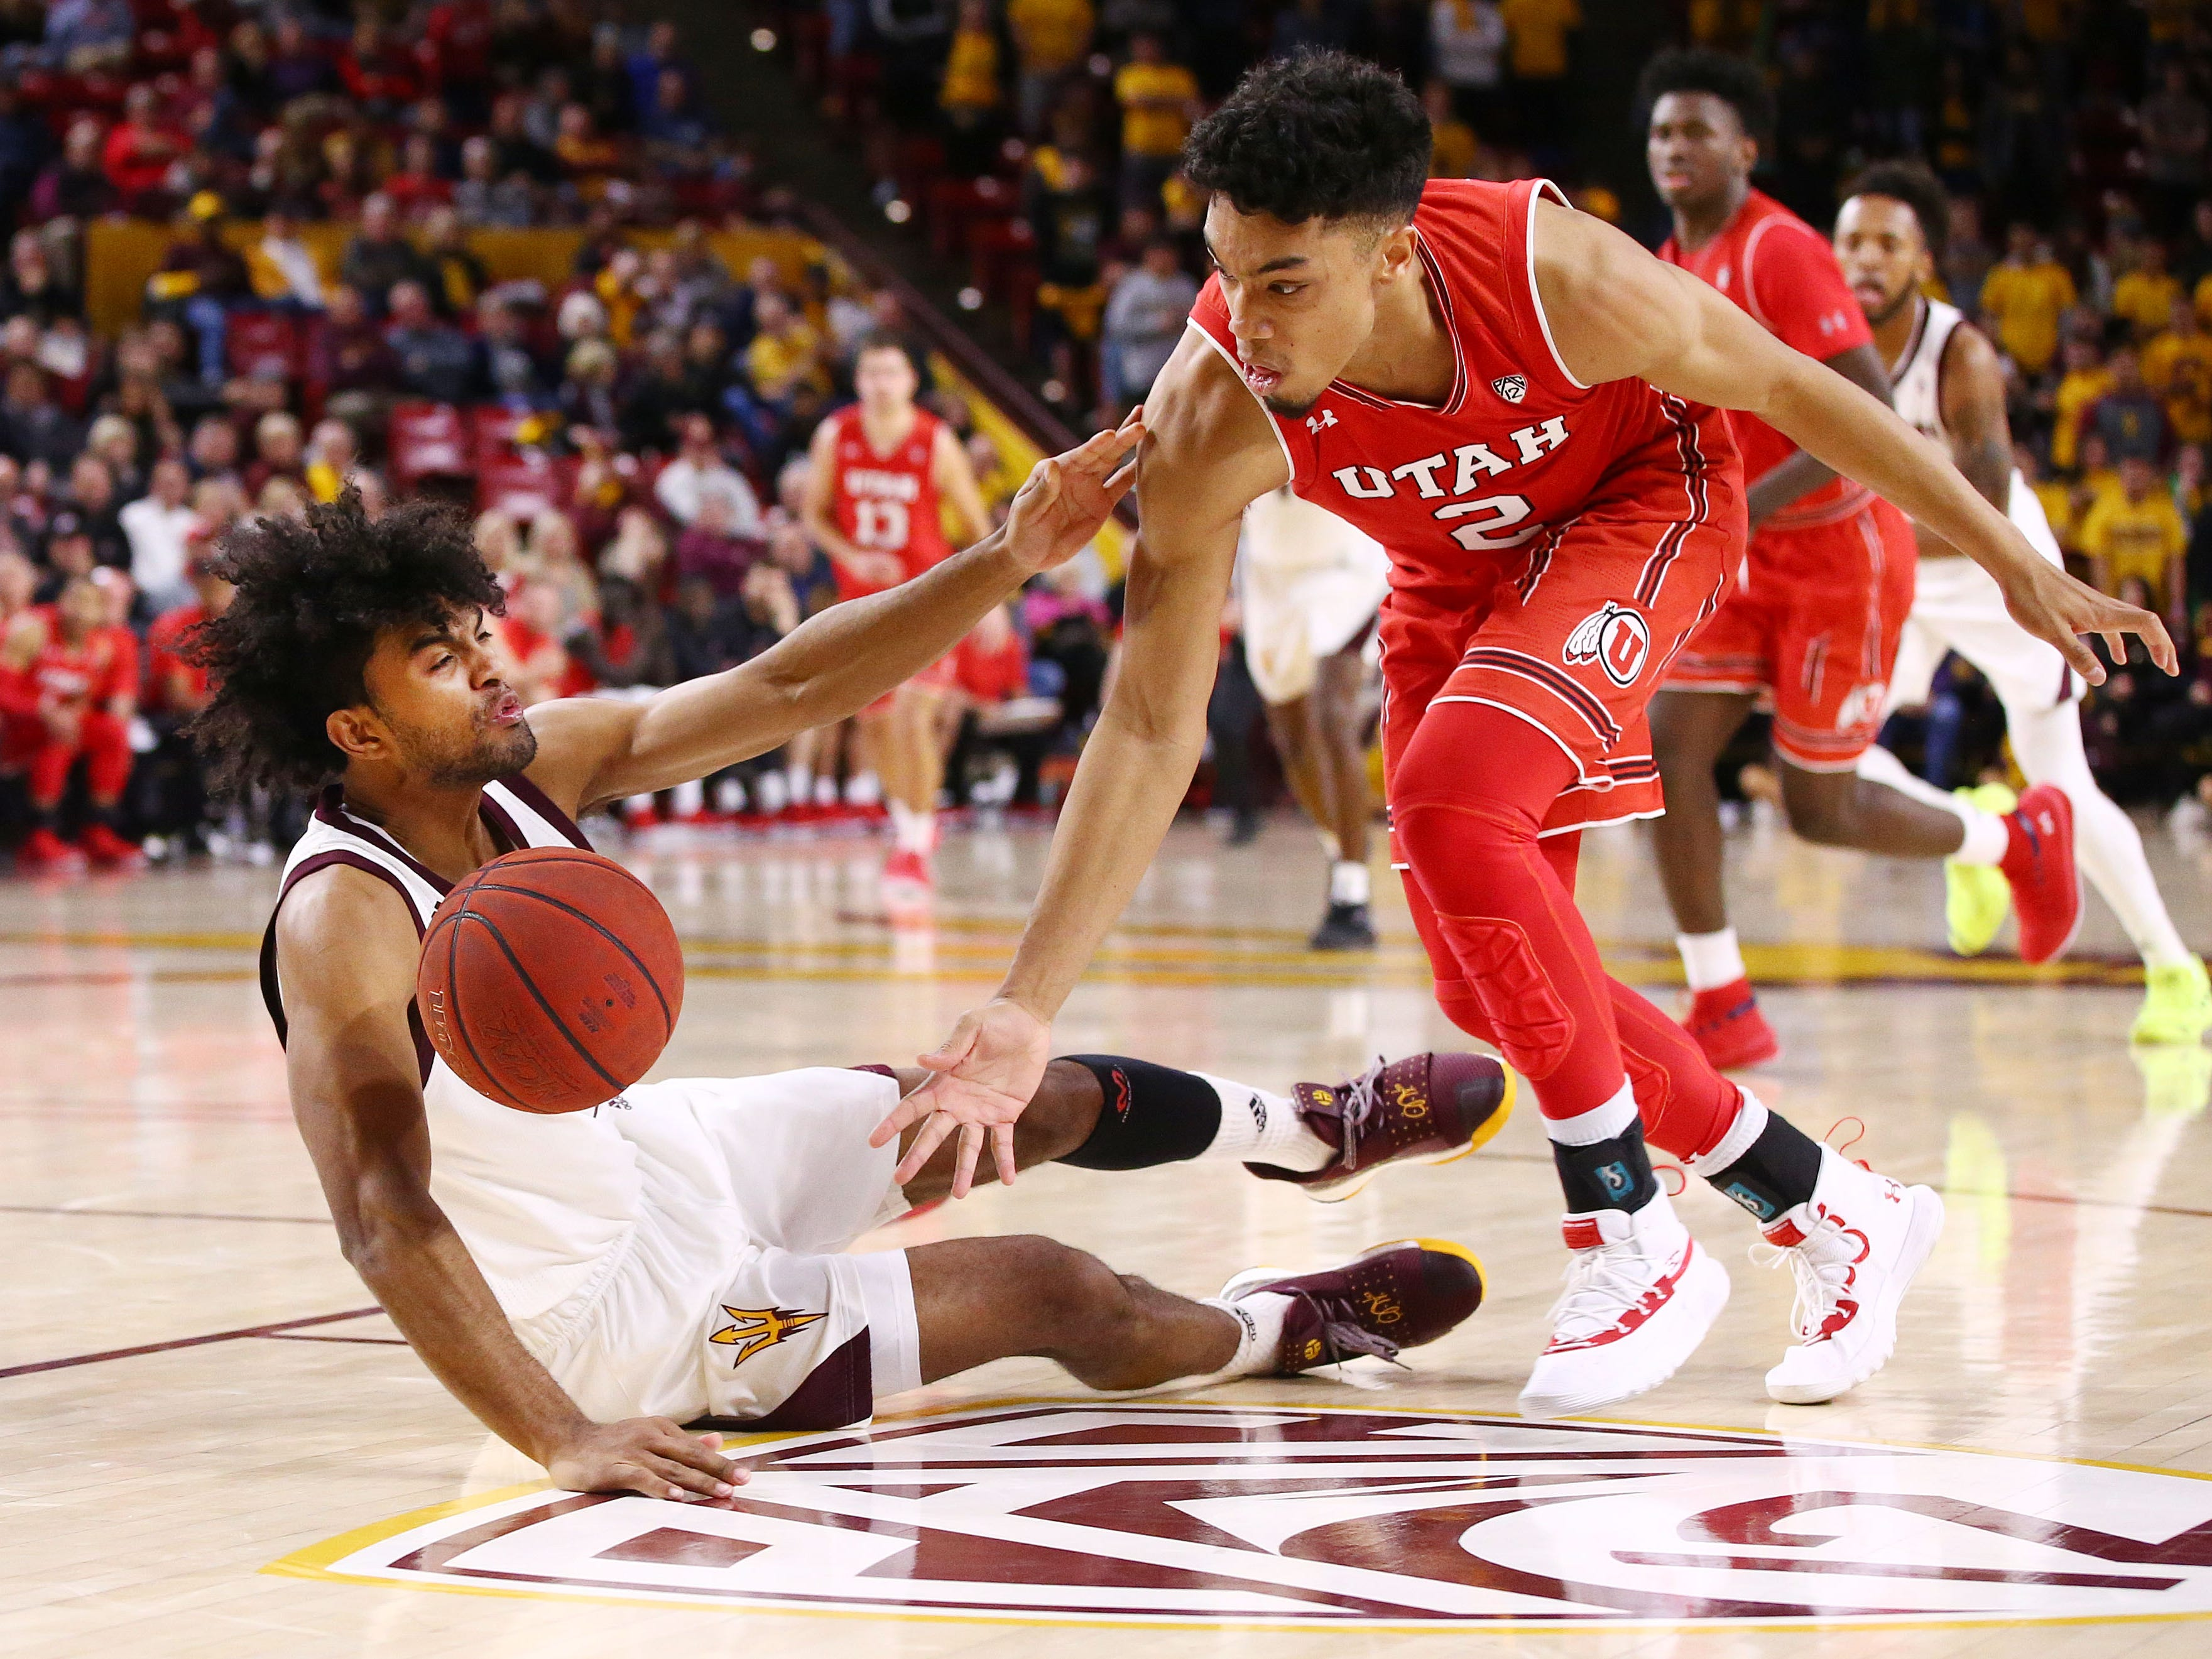 Arizona State Sun Devils guard Remy Martin battles for a loose ball with Utah Utes' Sedrick Barefield in the second half on Jan. 3 at Wells Fargo Arena in Tempe.